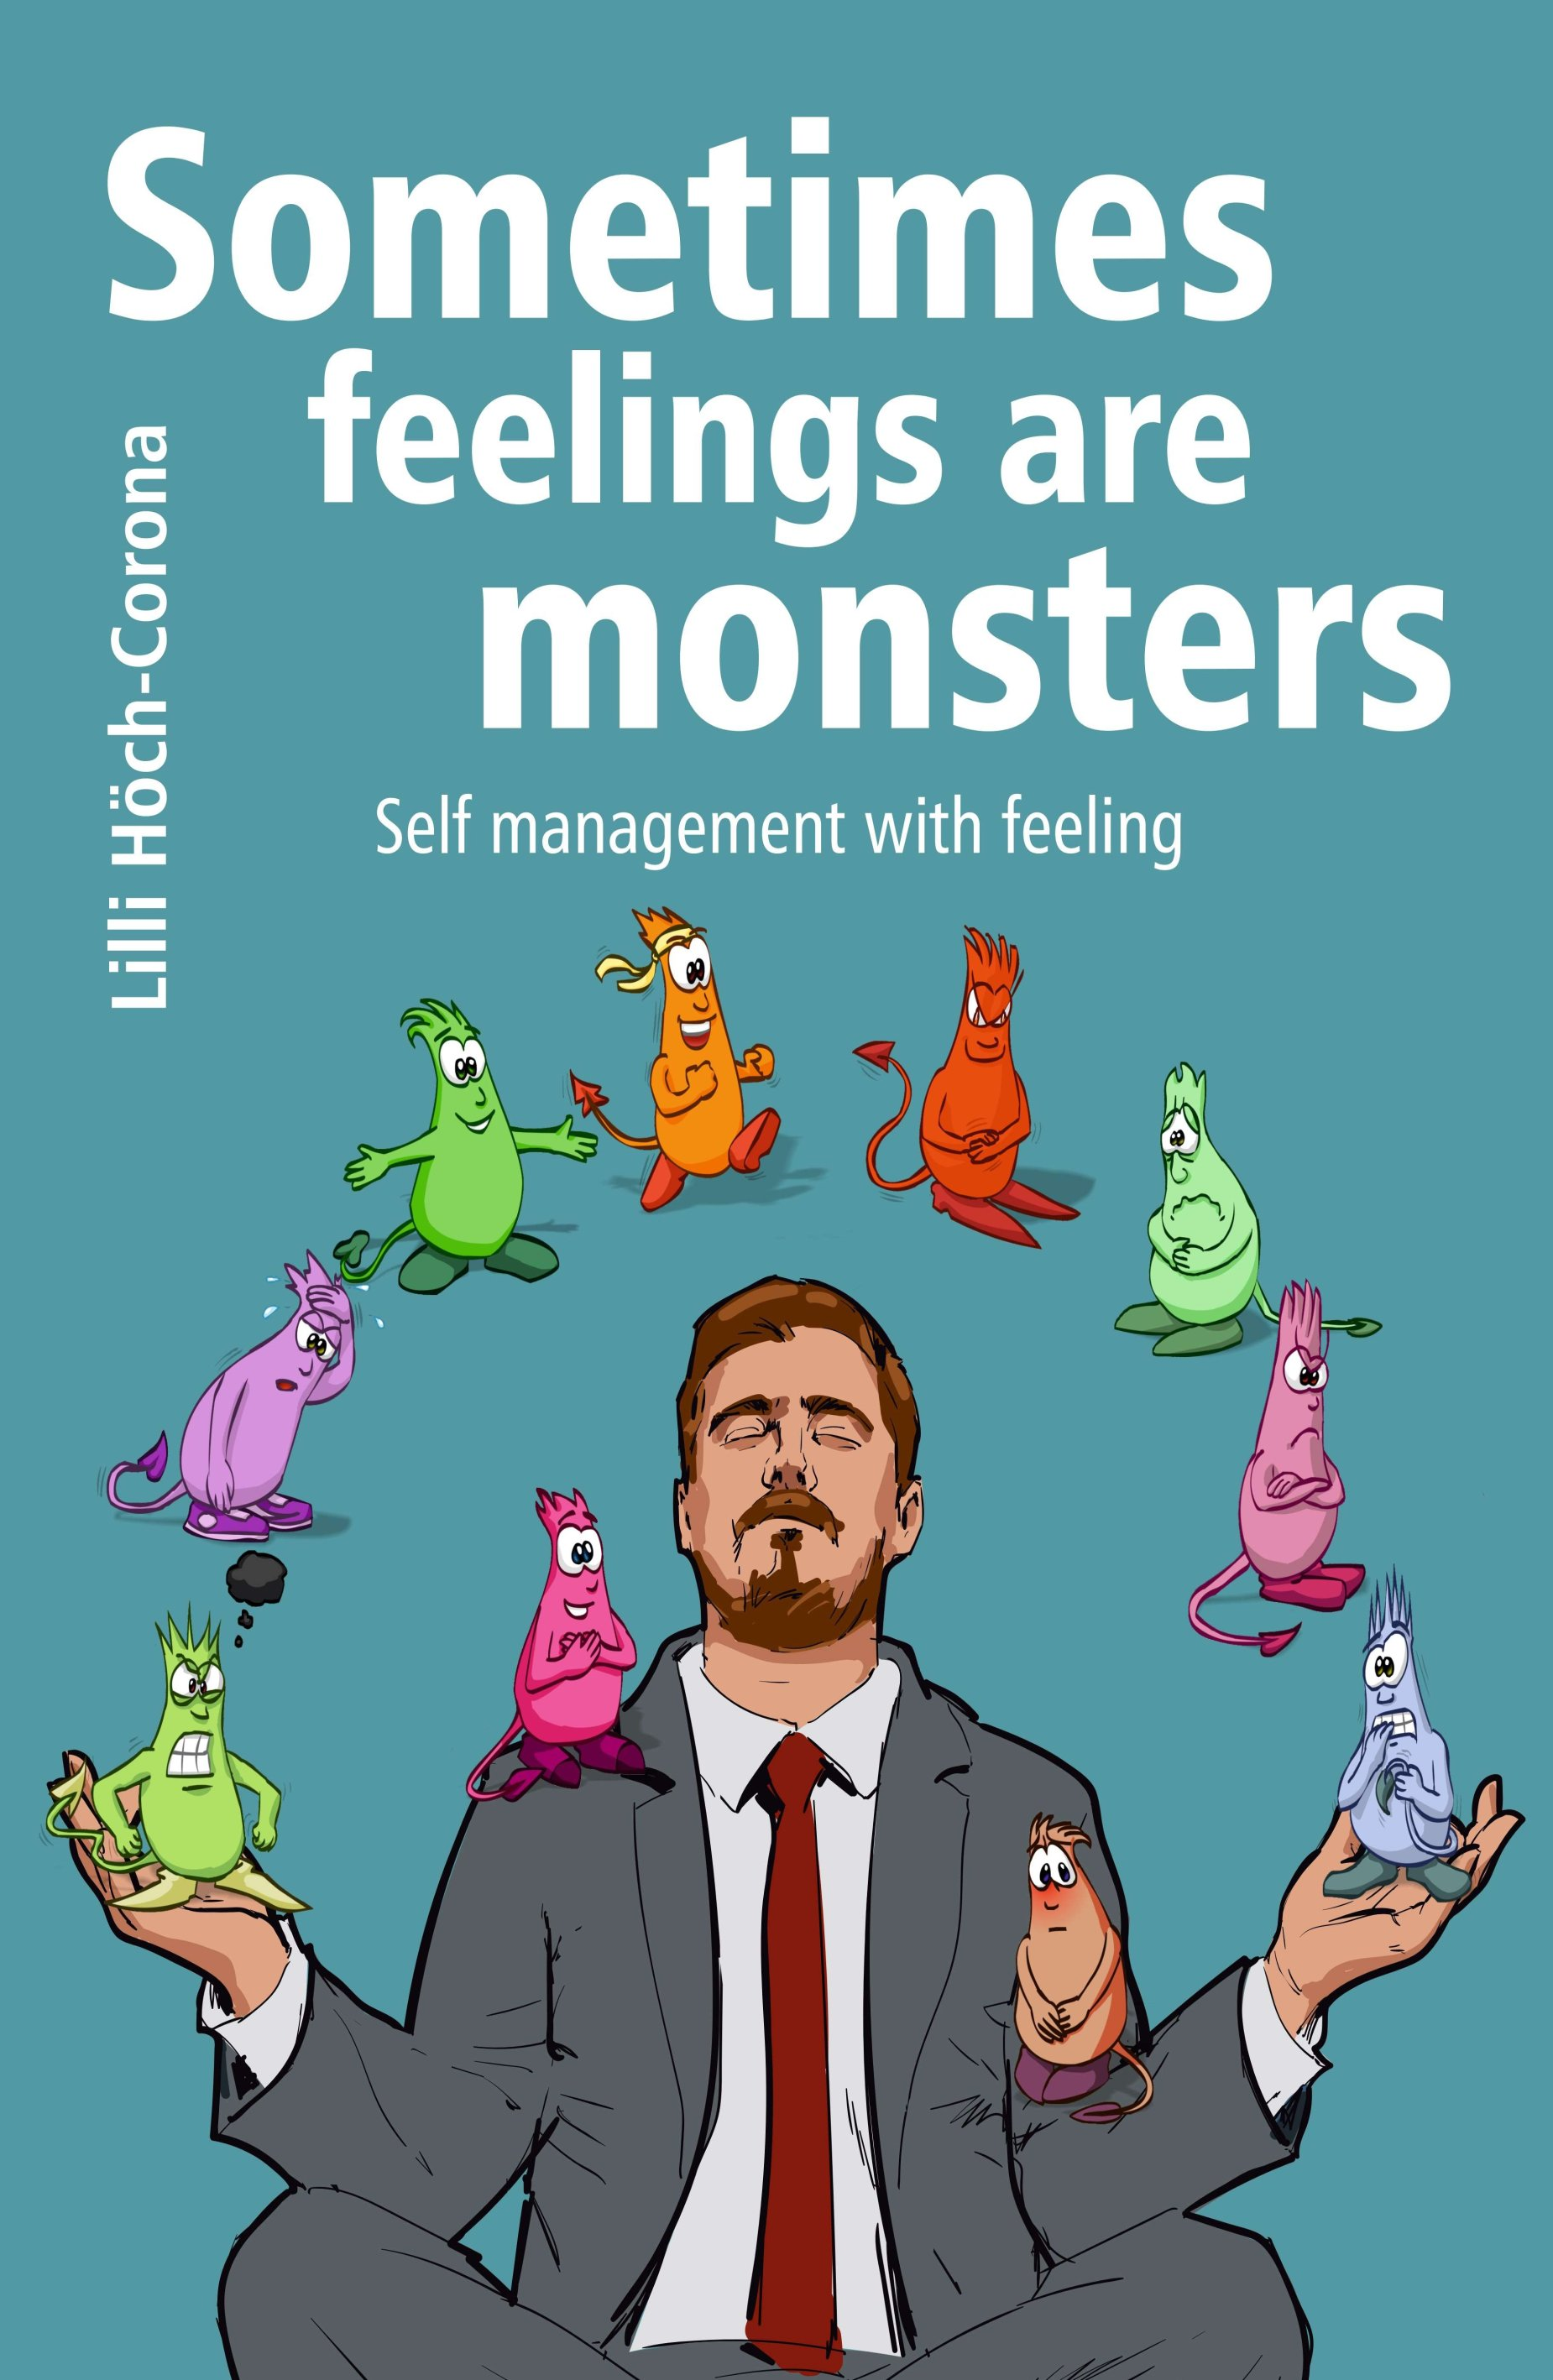 Sometimes feelings are monsters - Self management with feeling